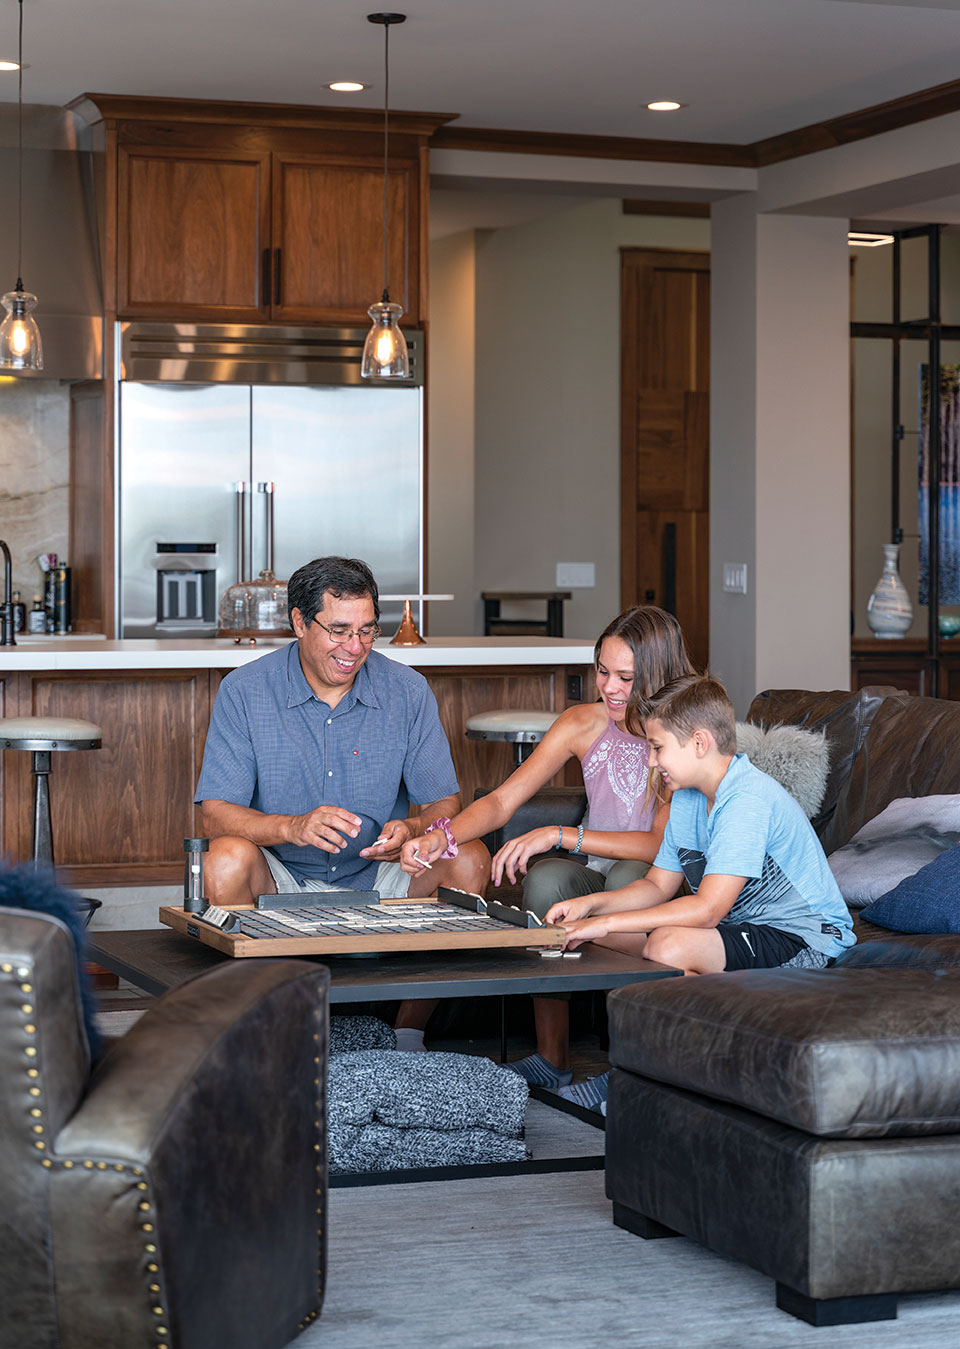 La Jolla coastal family-friendly remodel with space for Scrabble